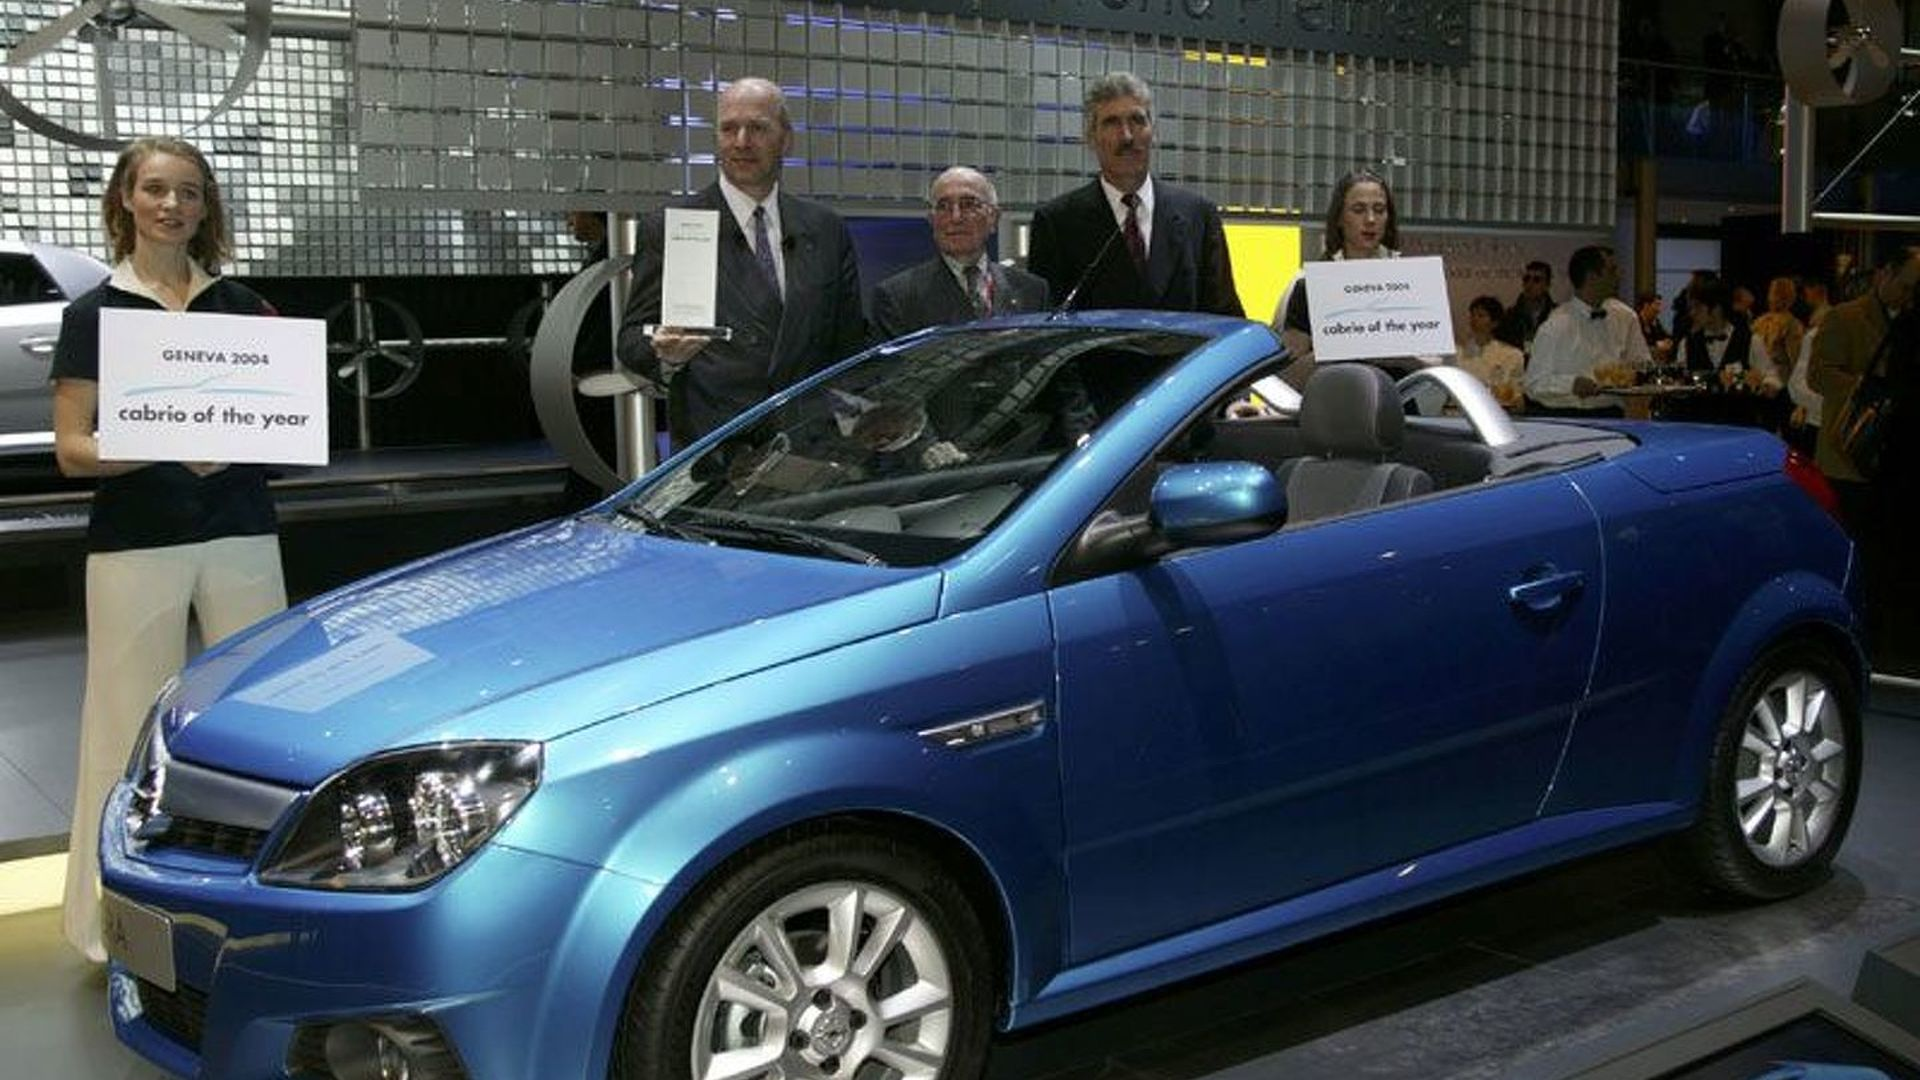 New Opel Tigra Twintop Voted Cabrio Of The Year 2004 Motor1 Com Photos